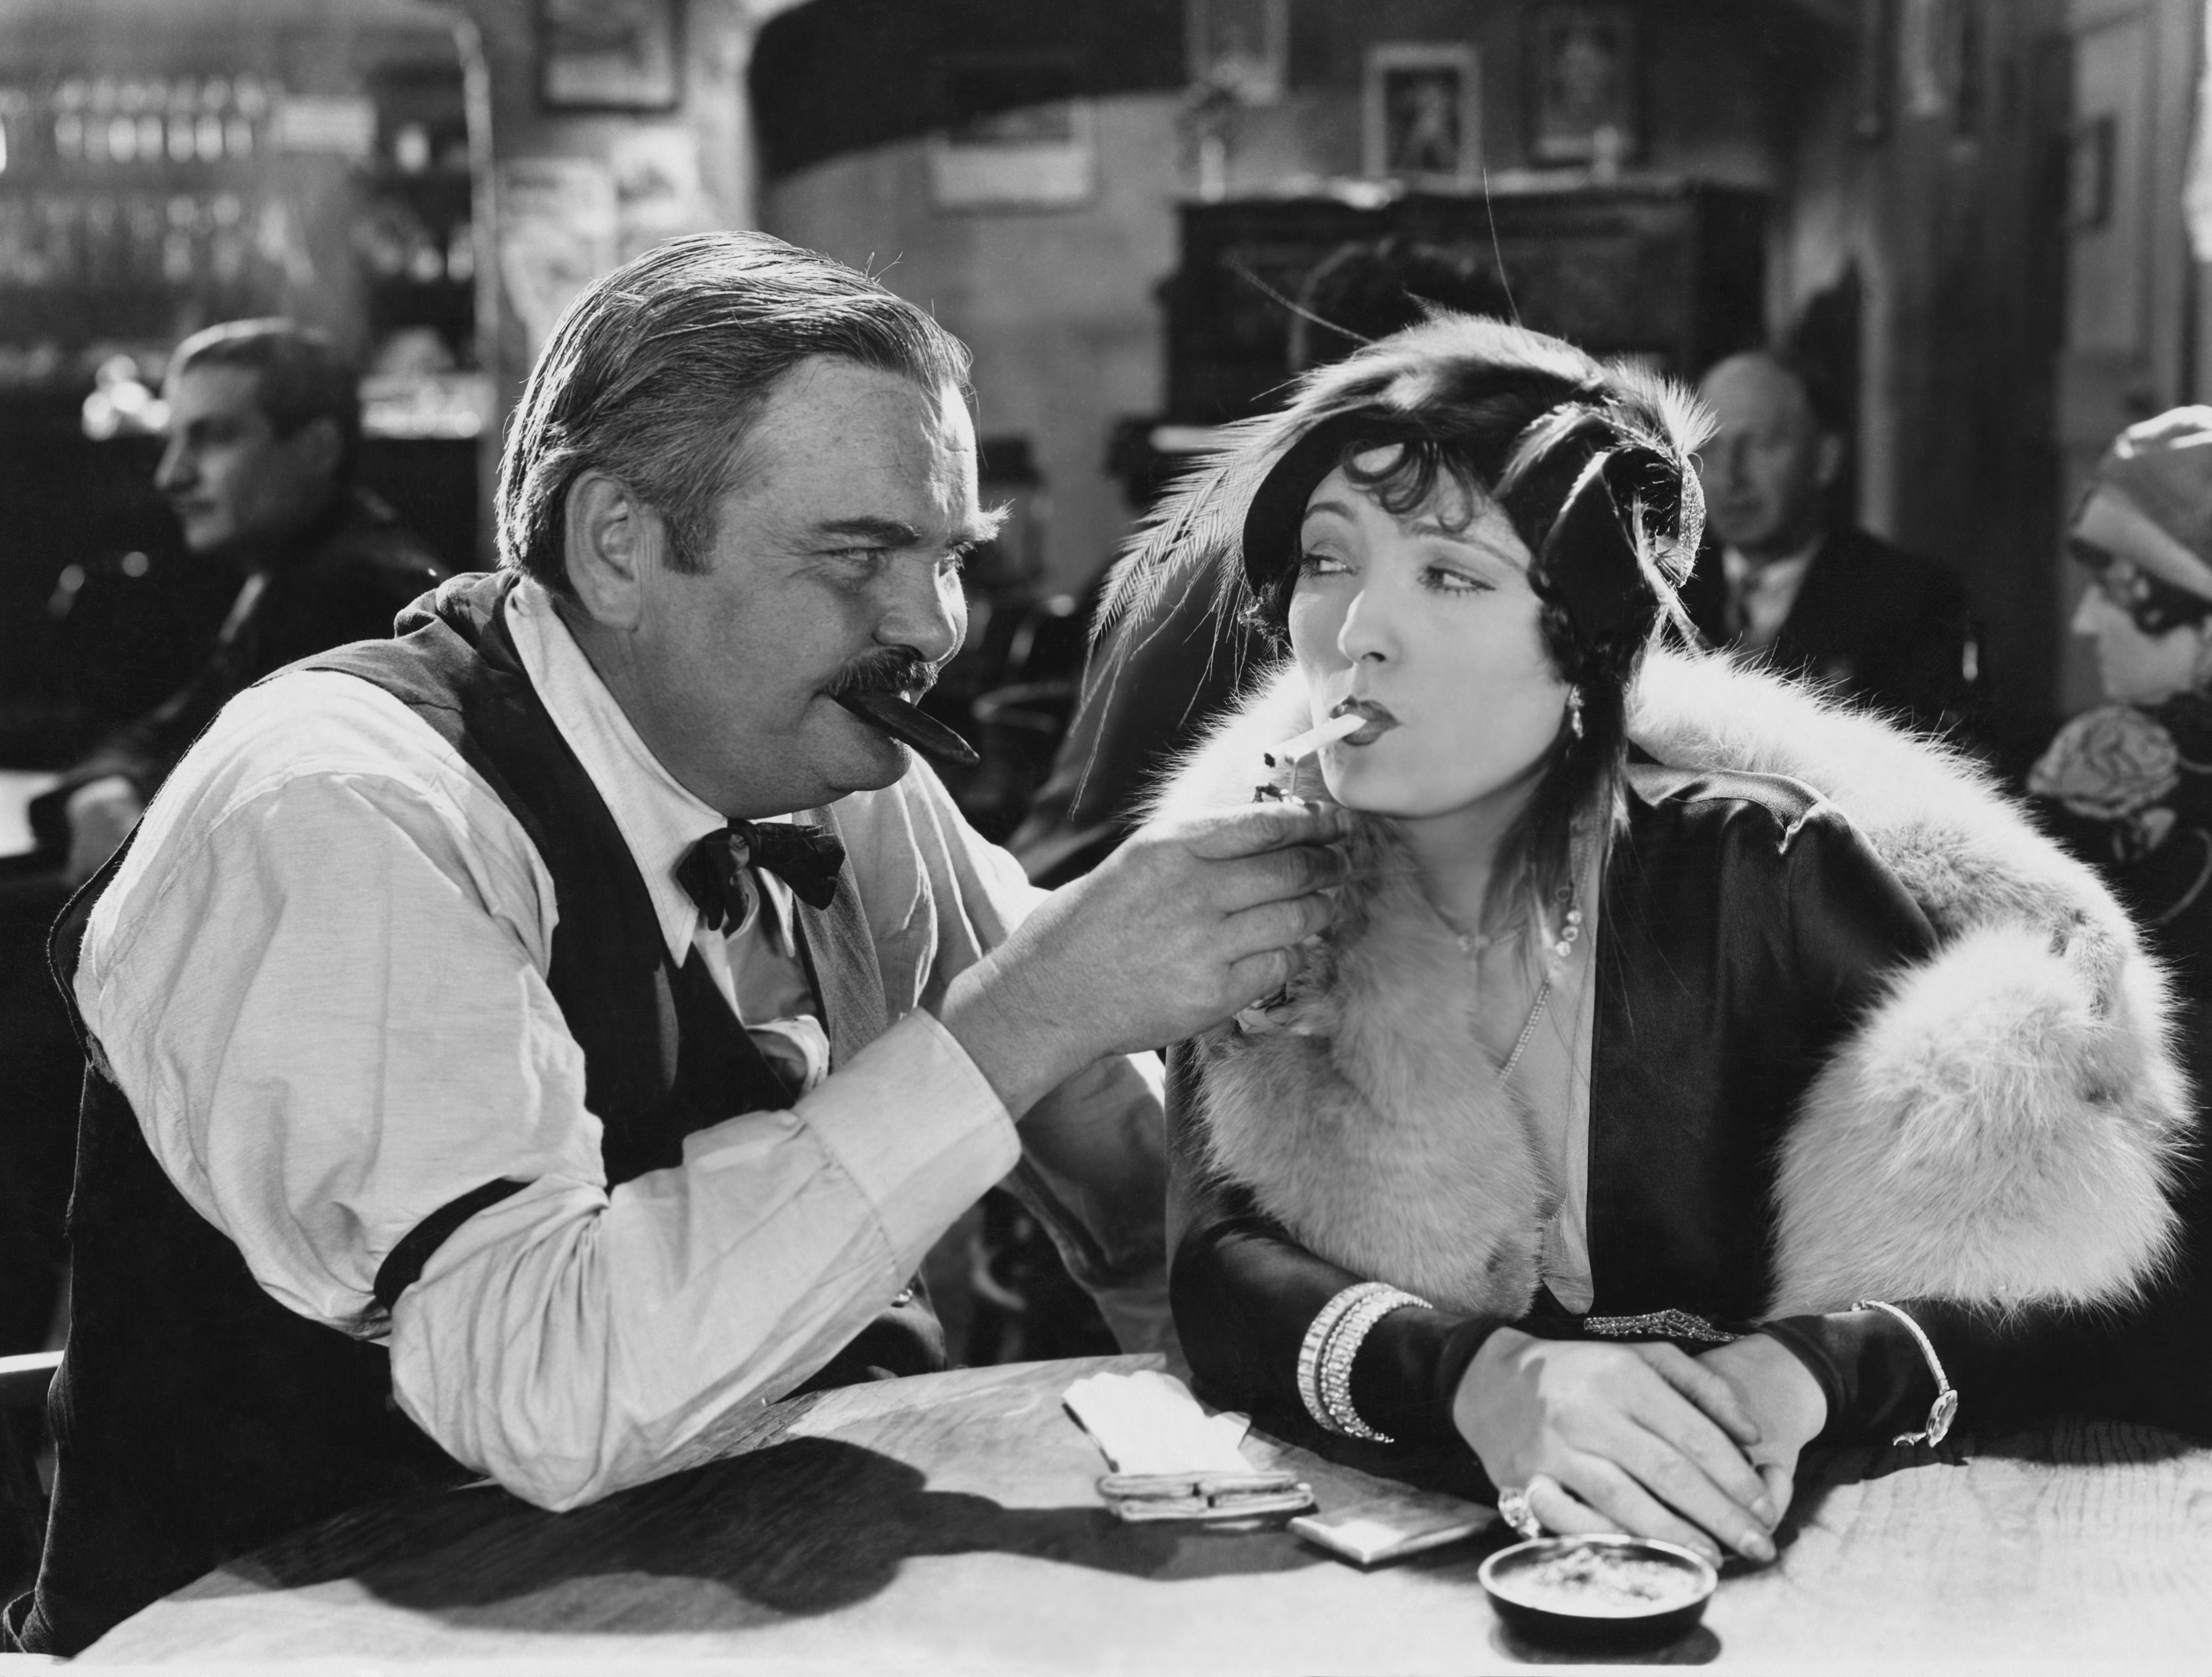 A black and white photo of a man and a woman in old fashioned clothes at a restaurant. The man is lighting the woman's cigarette.